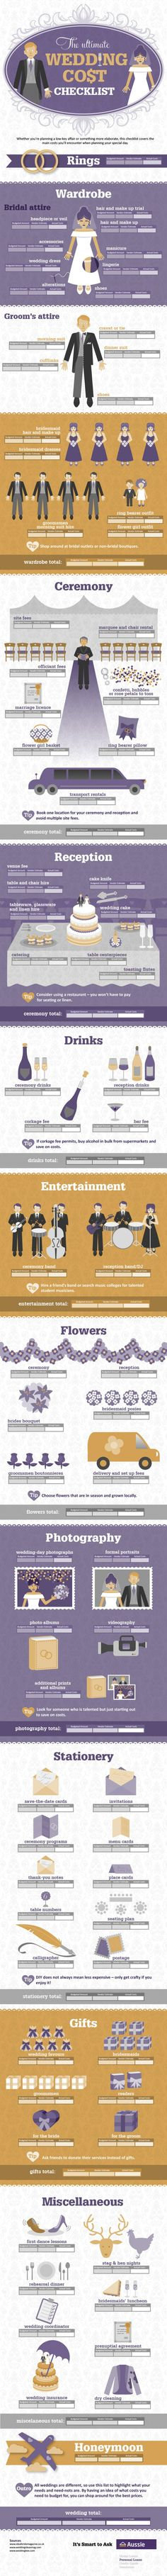 The Ultimate Wedding Cost Checklist  Use this handy printable infographic to keep track of costs as you plan.